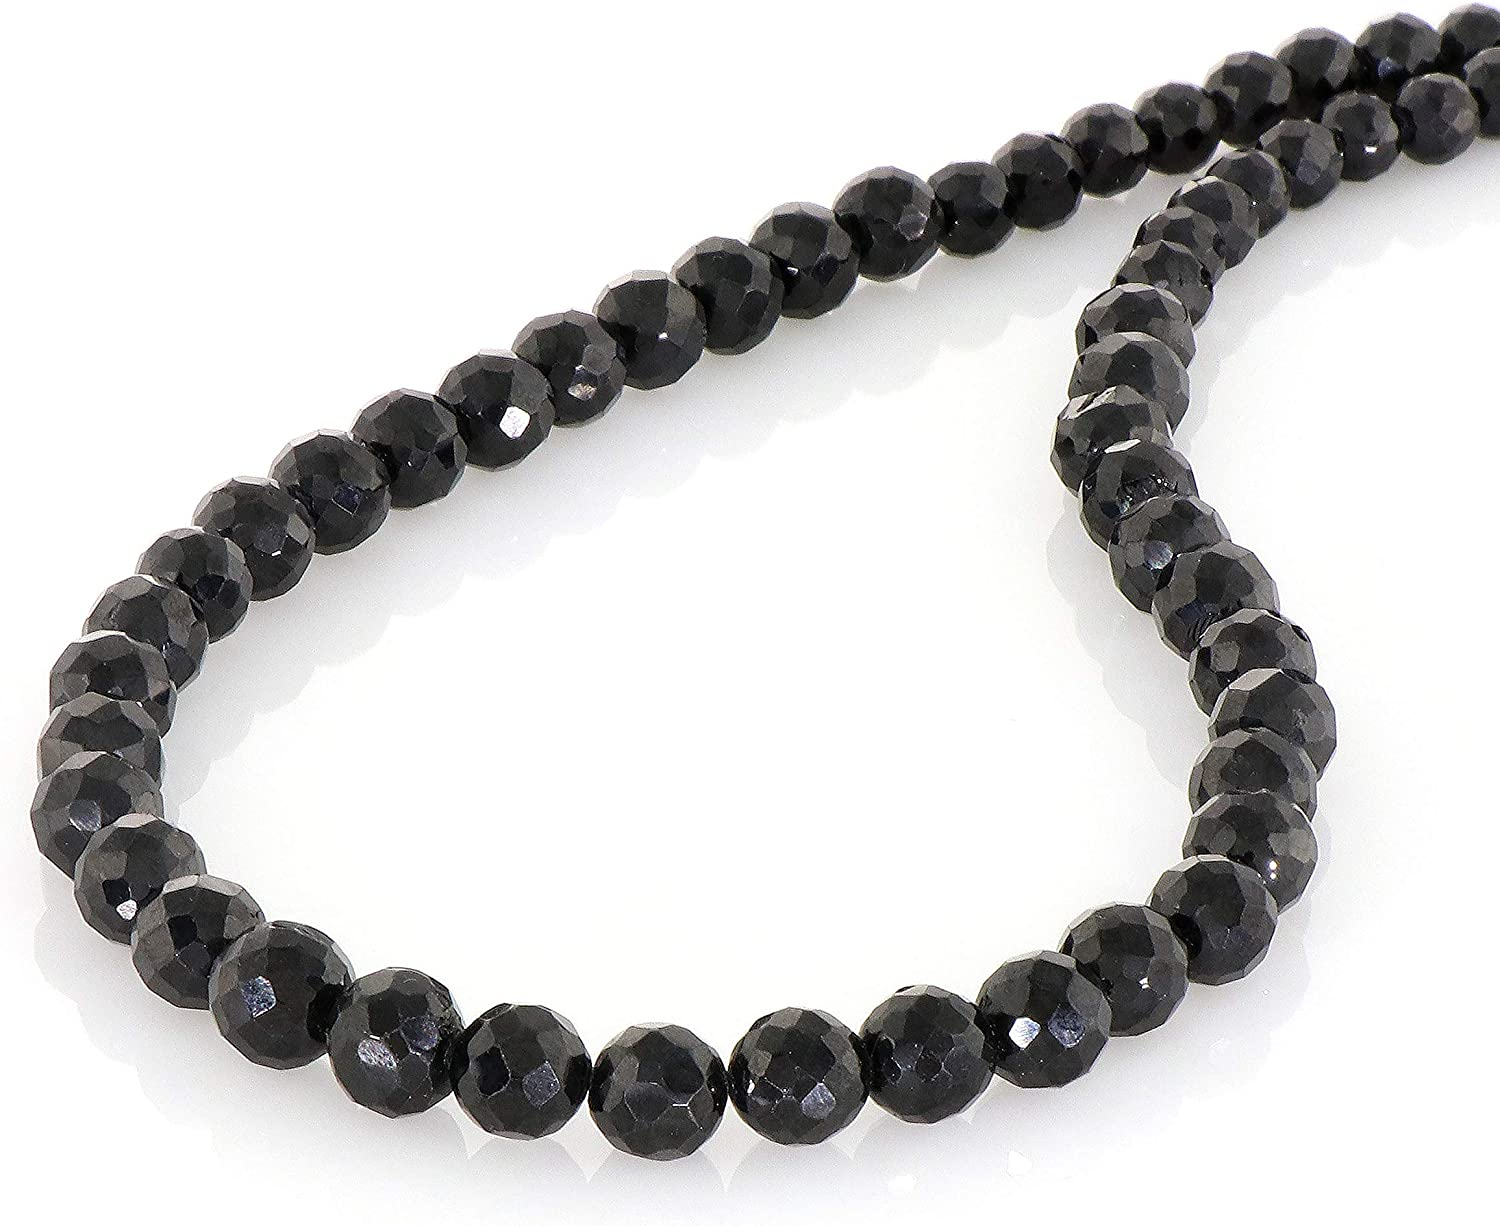 NirvanaIN Columbus Mall Natural Black Spinel Necklace Stone Spin Jewelry Limited time cheap sale